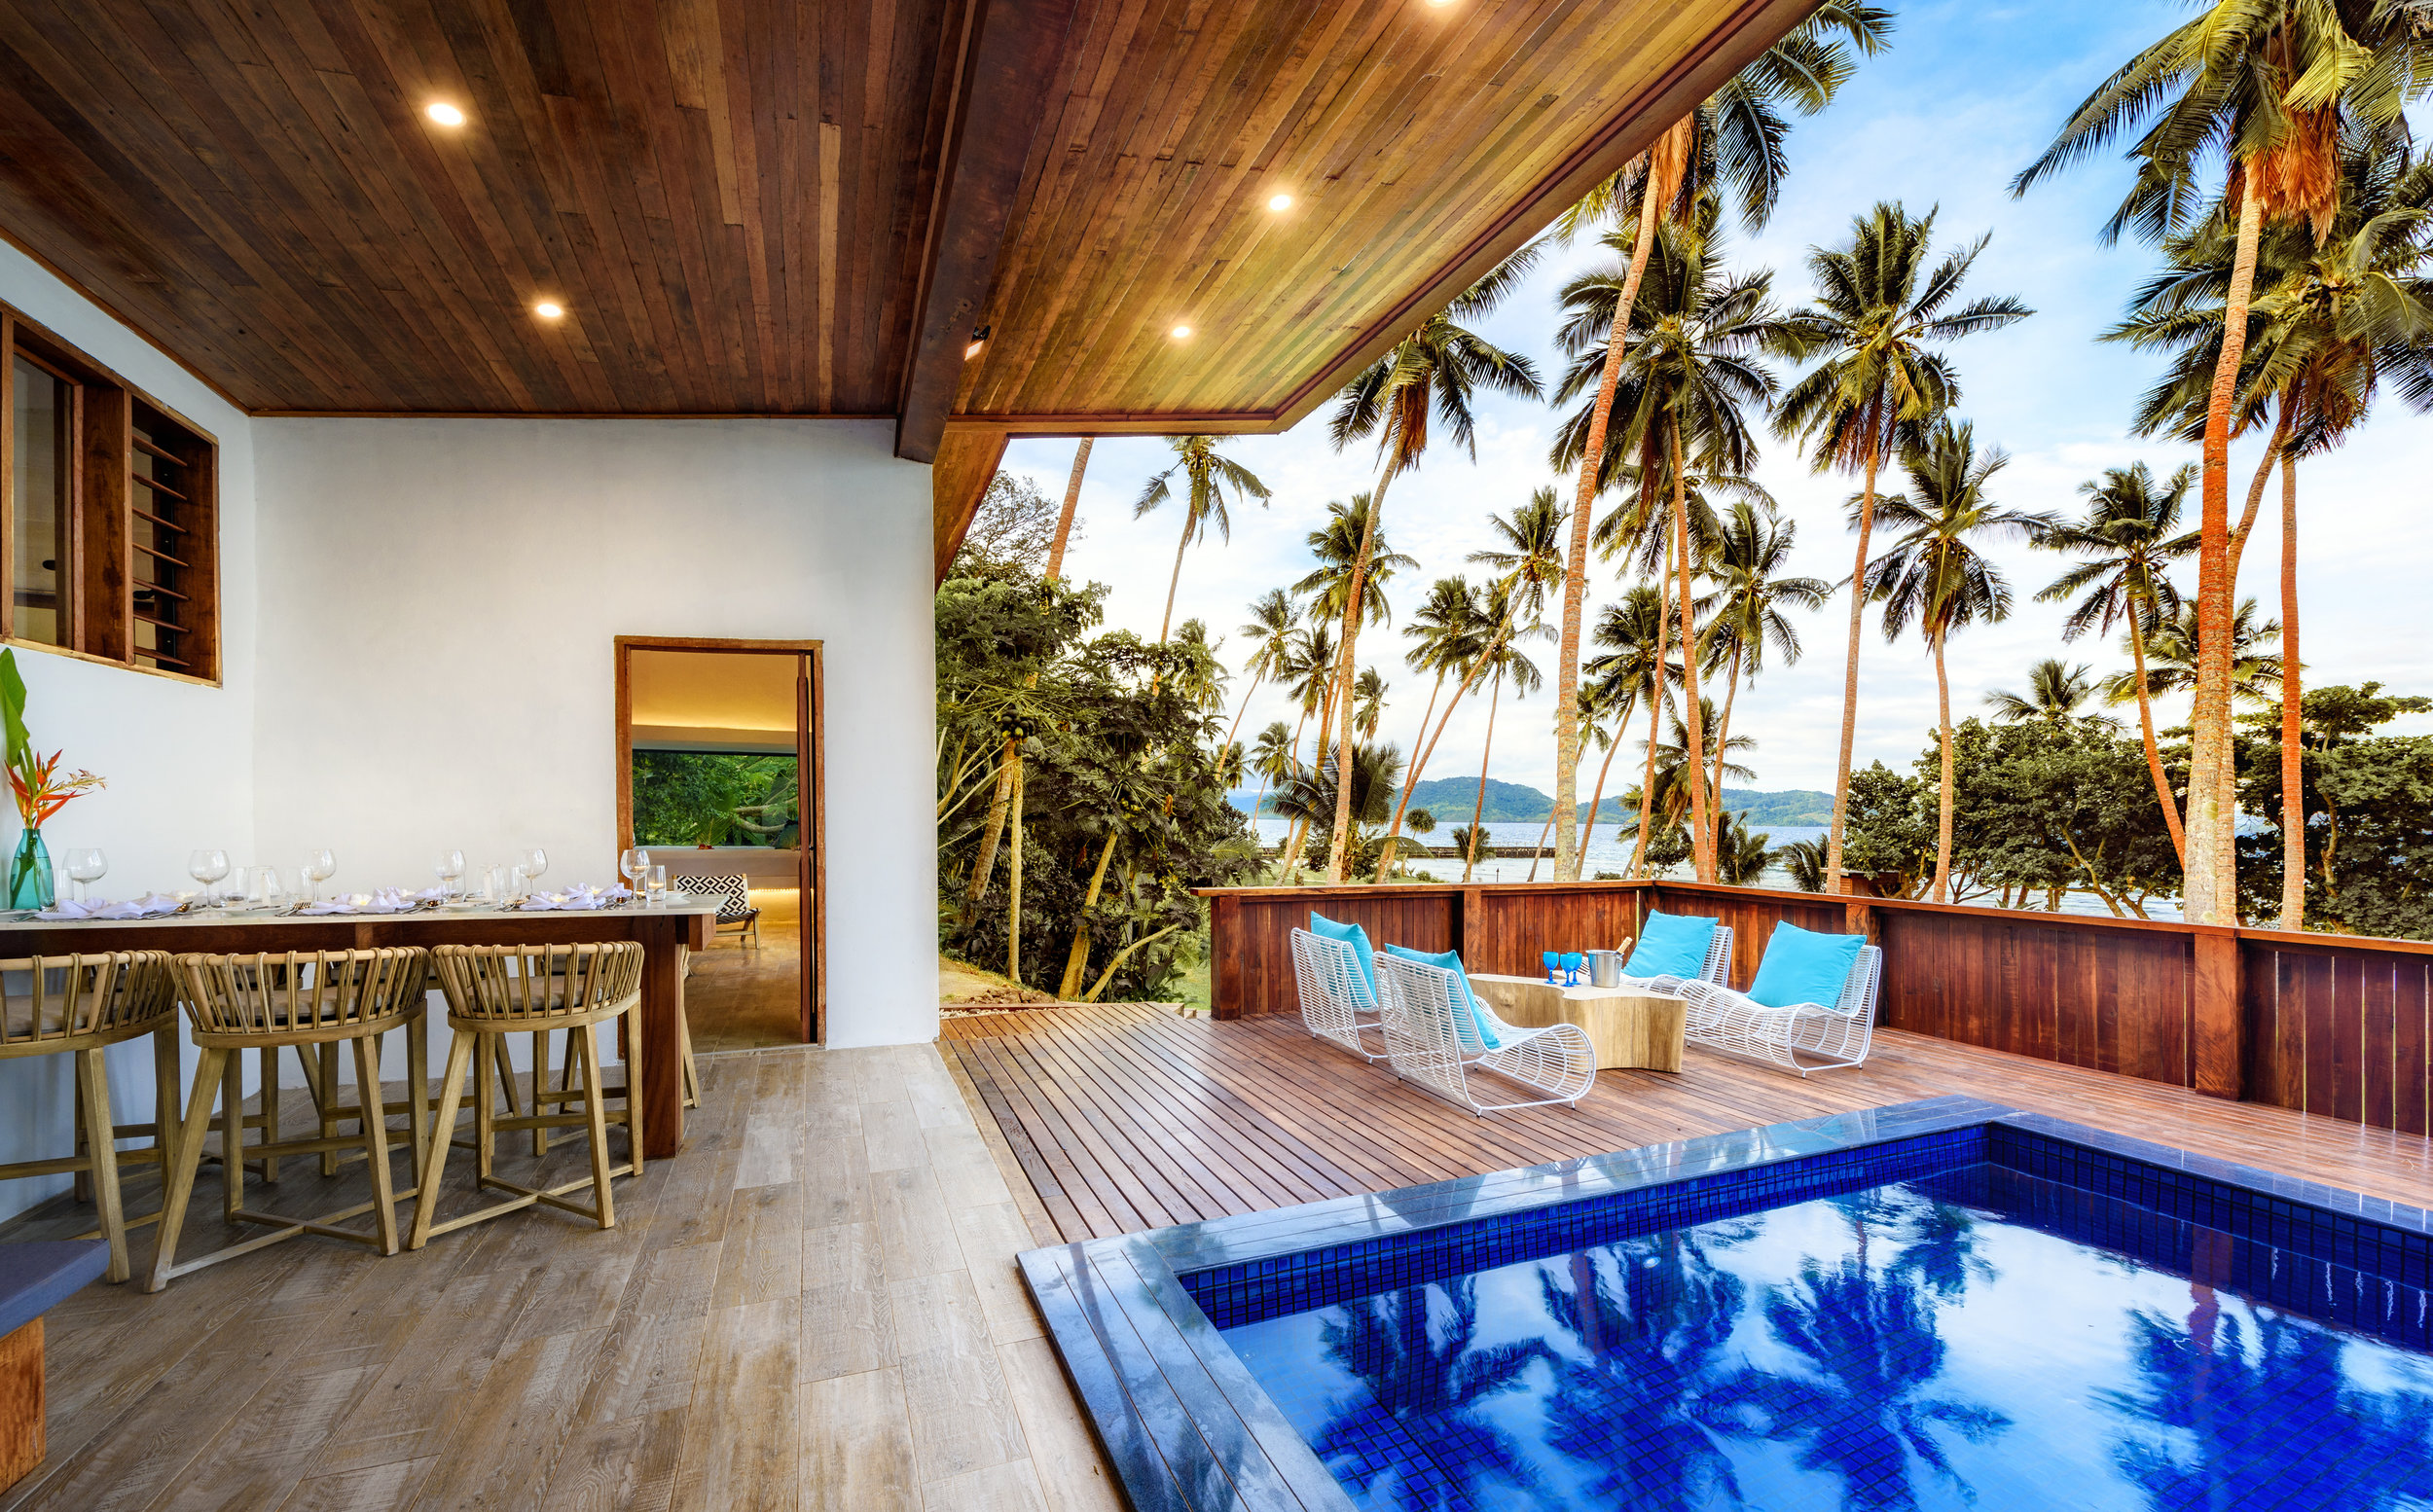 Fiji Resort - Two-bedroom Royal Retreat - Family Accommodation - up to 5 persons